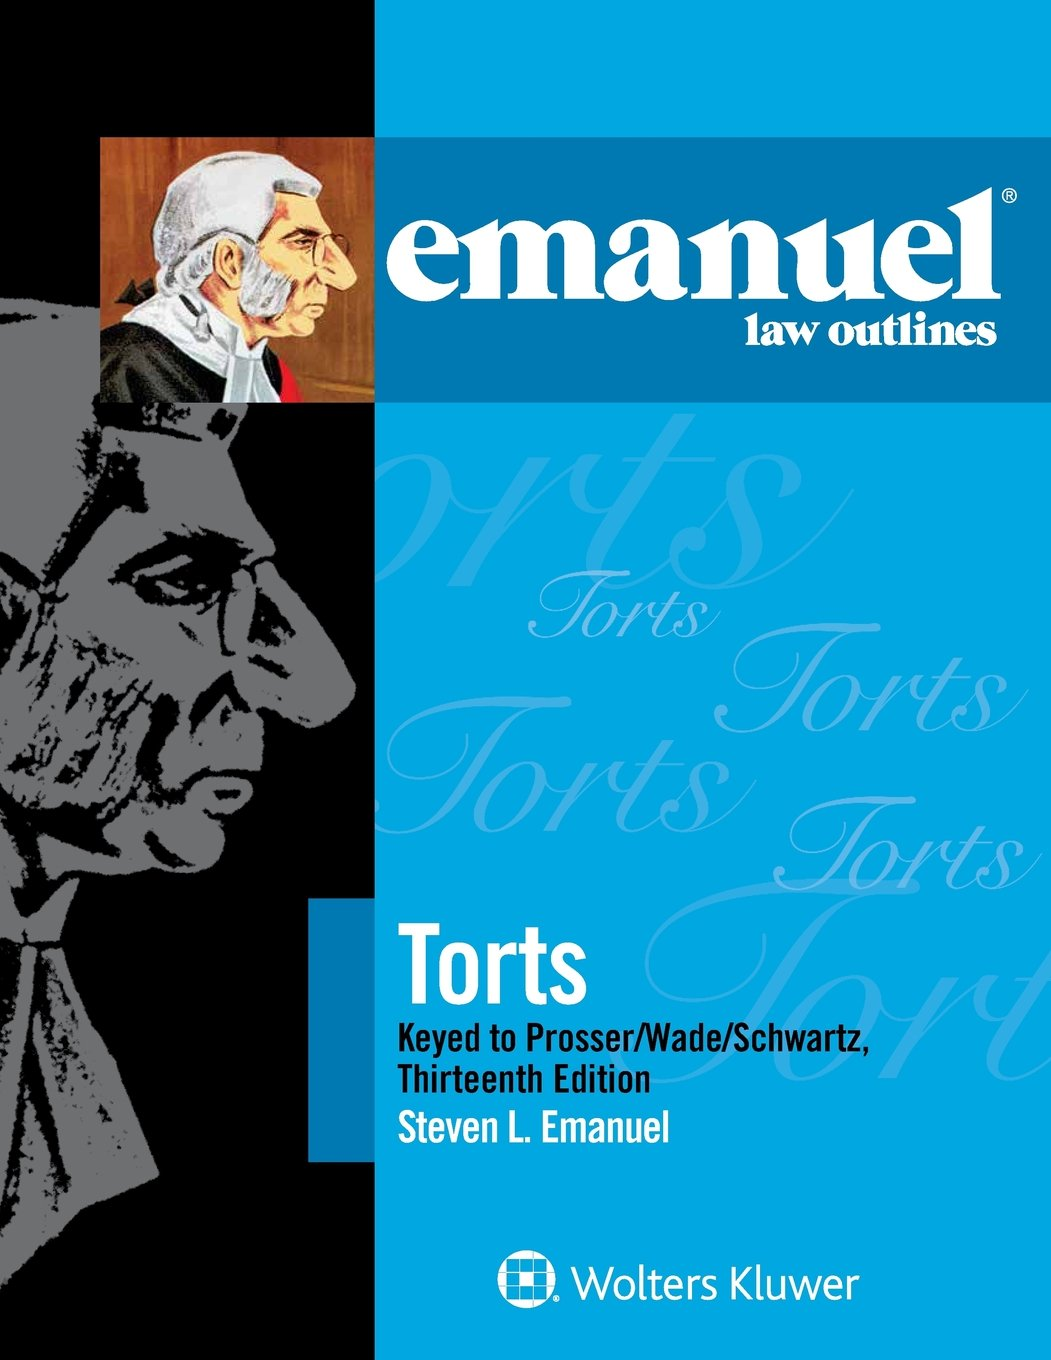 Emanuel Law Outlines: Torts, Keyed to